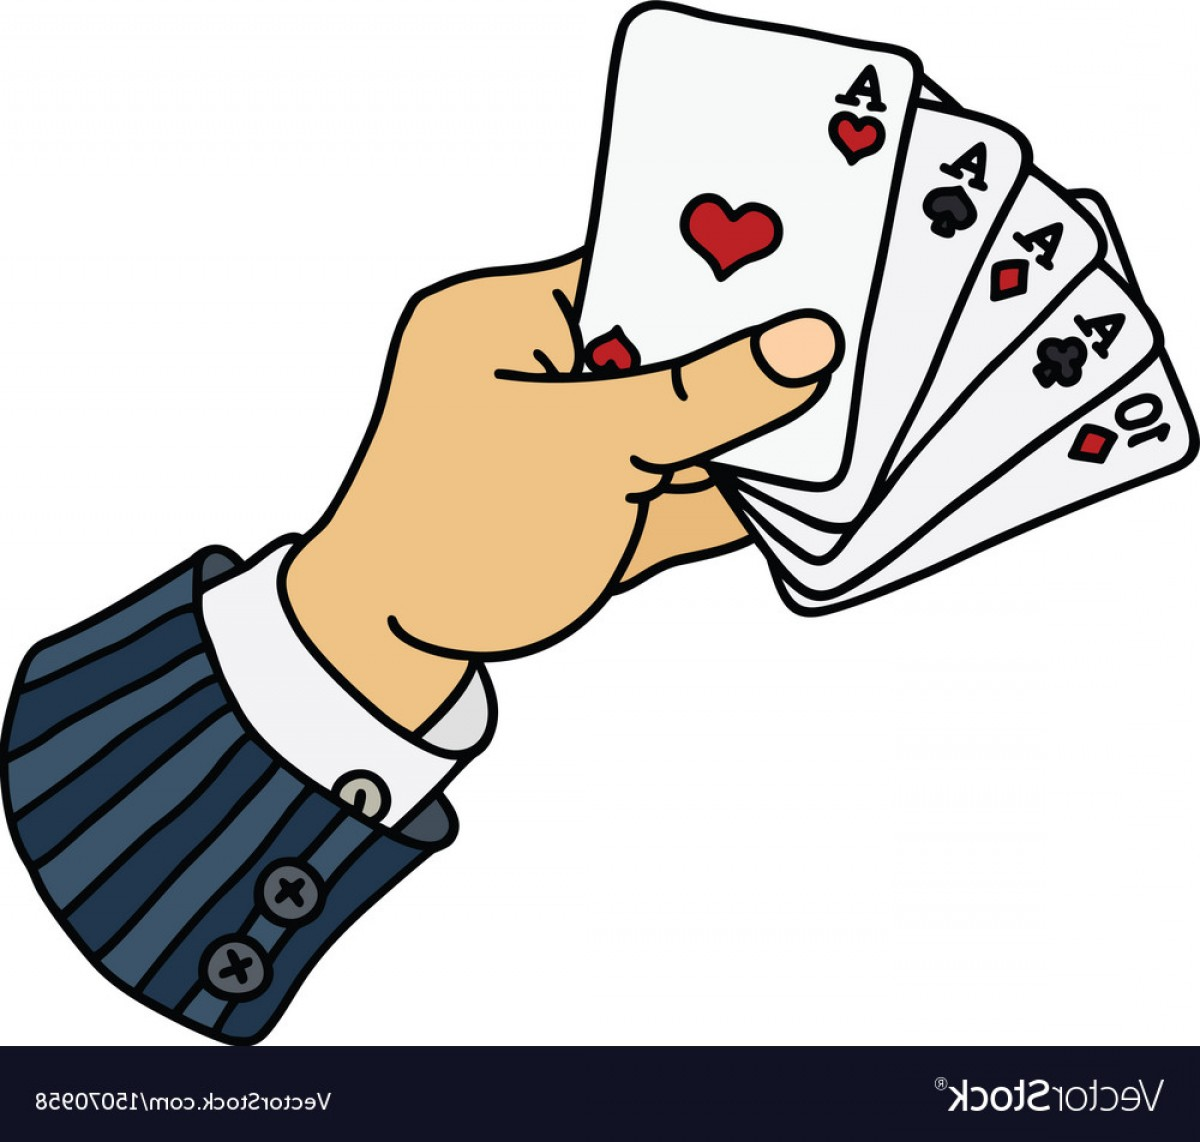 Poker Hand Vector: Funny Poker Cards In Hand Vector